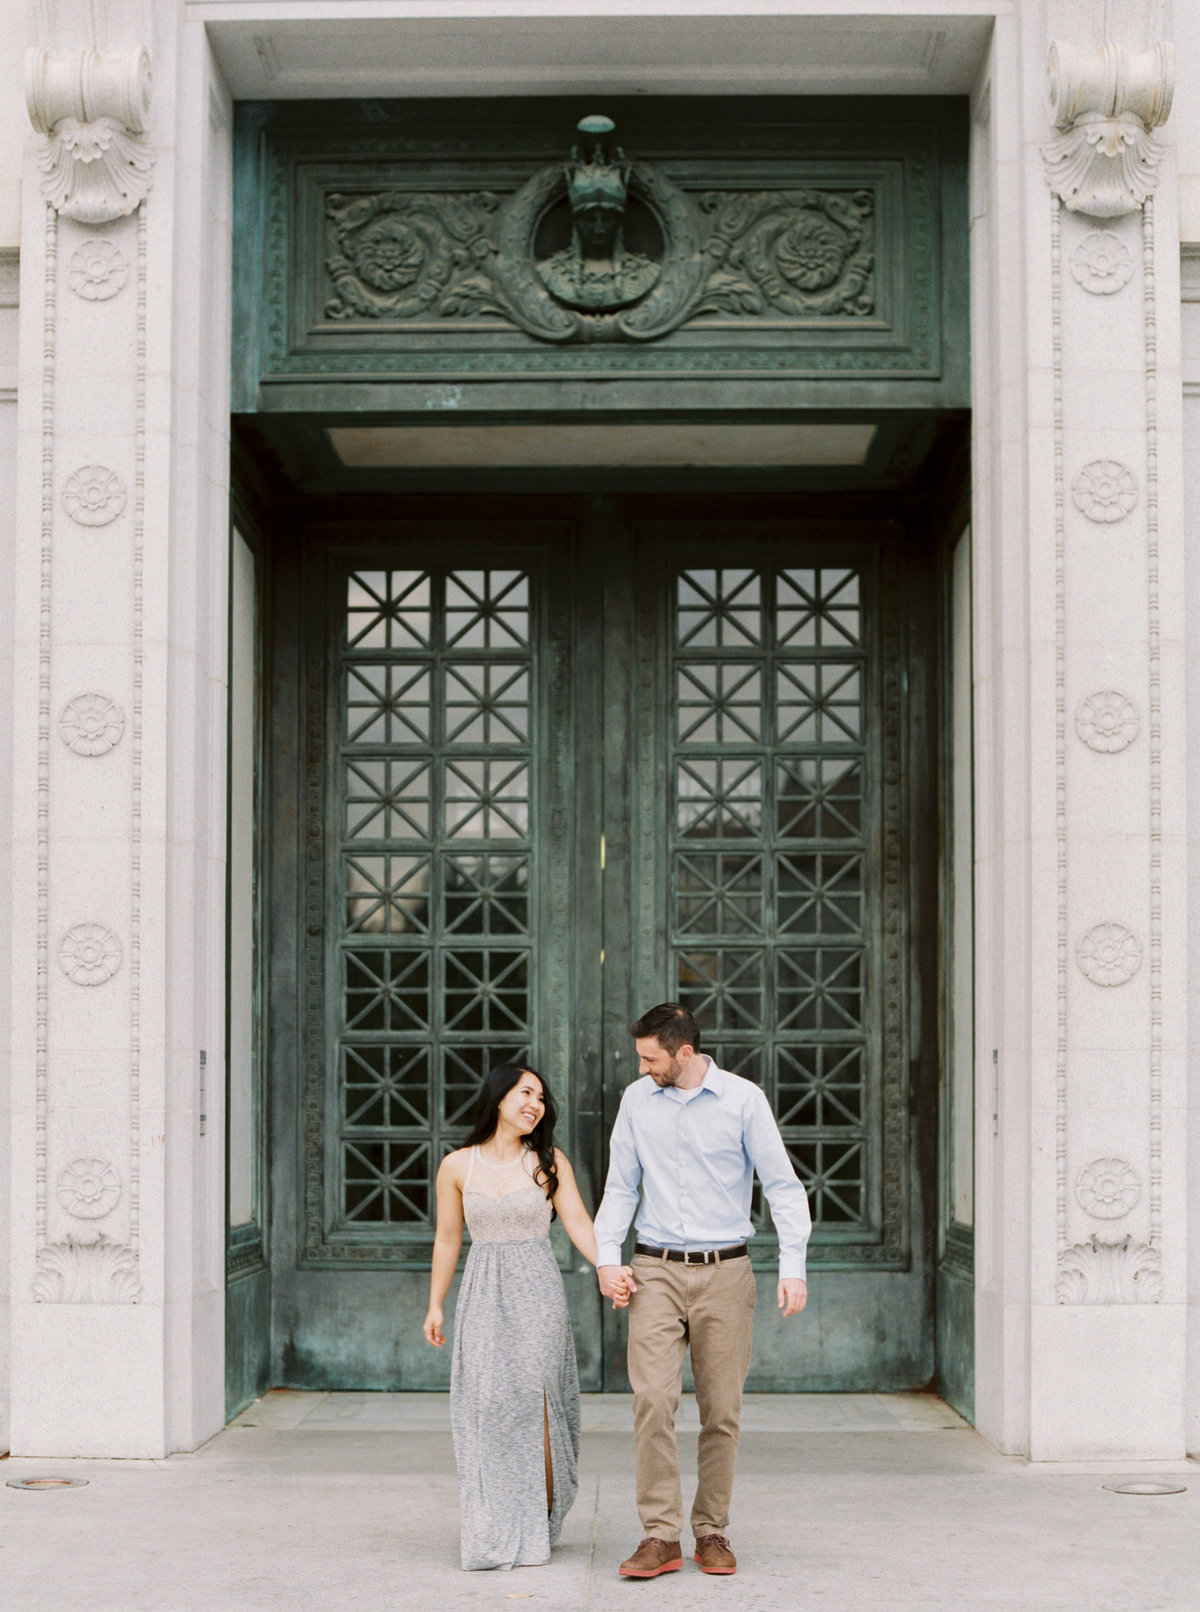 Loan + Scott University of California Berkeley Campus Engagement Session 0072